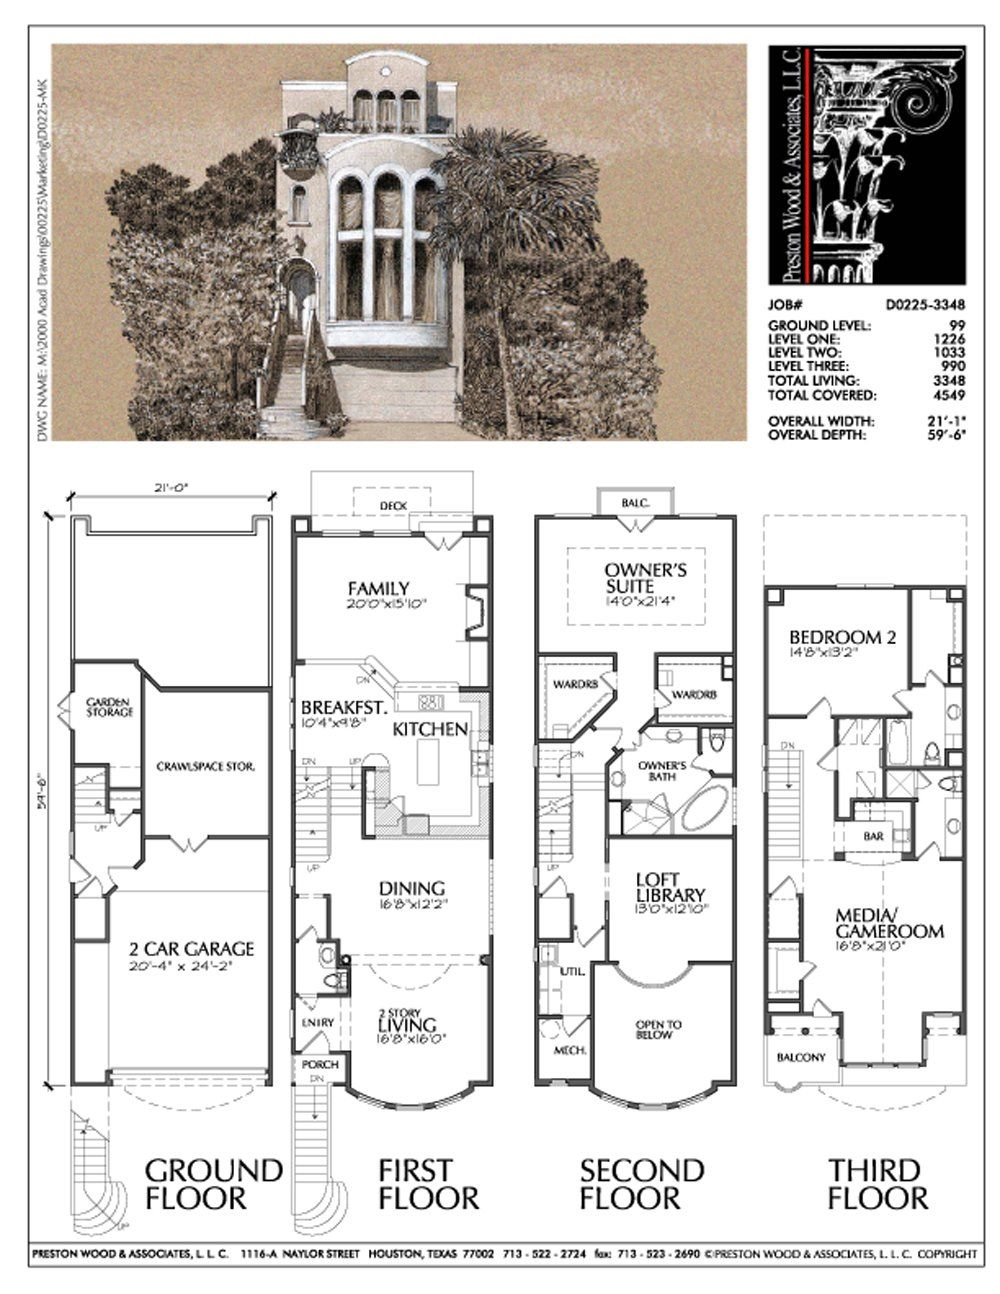 3 1 2 Story Townhouse Plan D0225 Vintage House Plans Duplex Floor Plans How To Plan